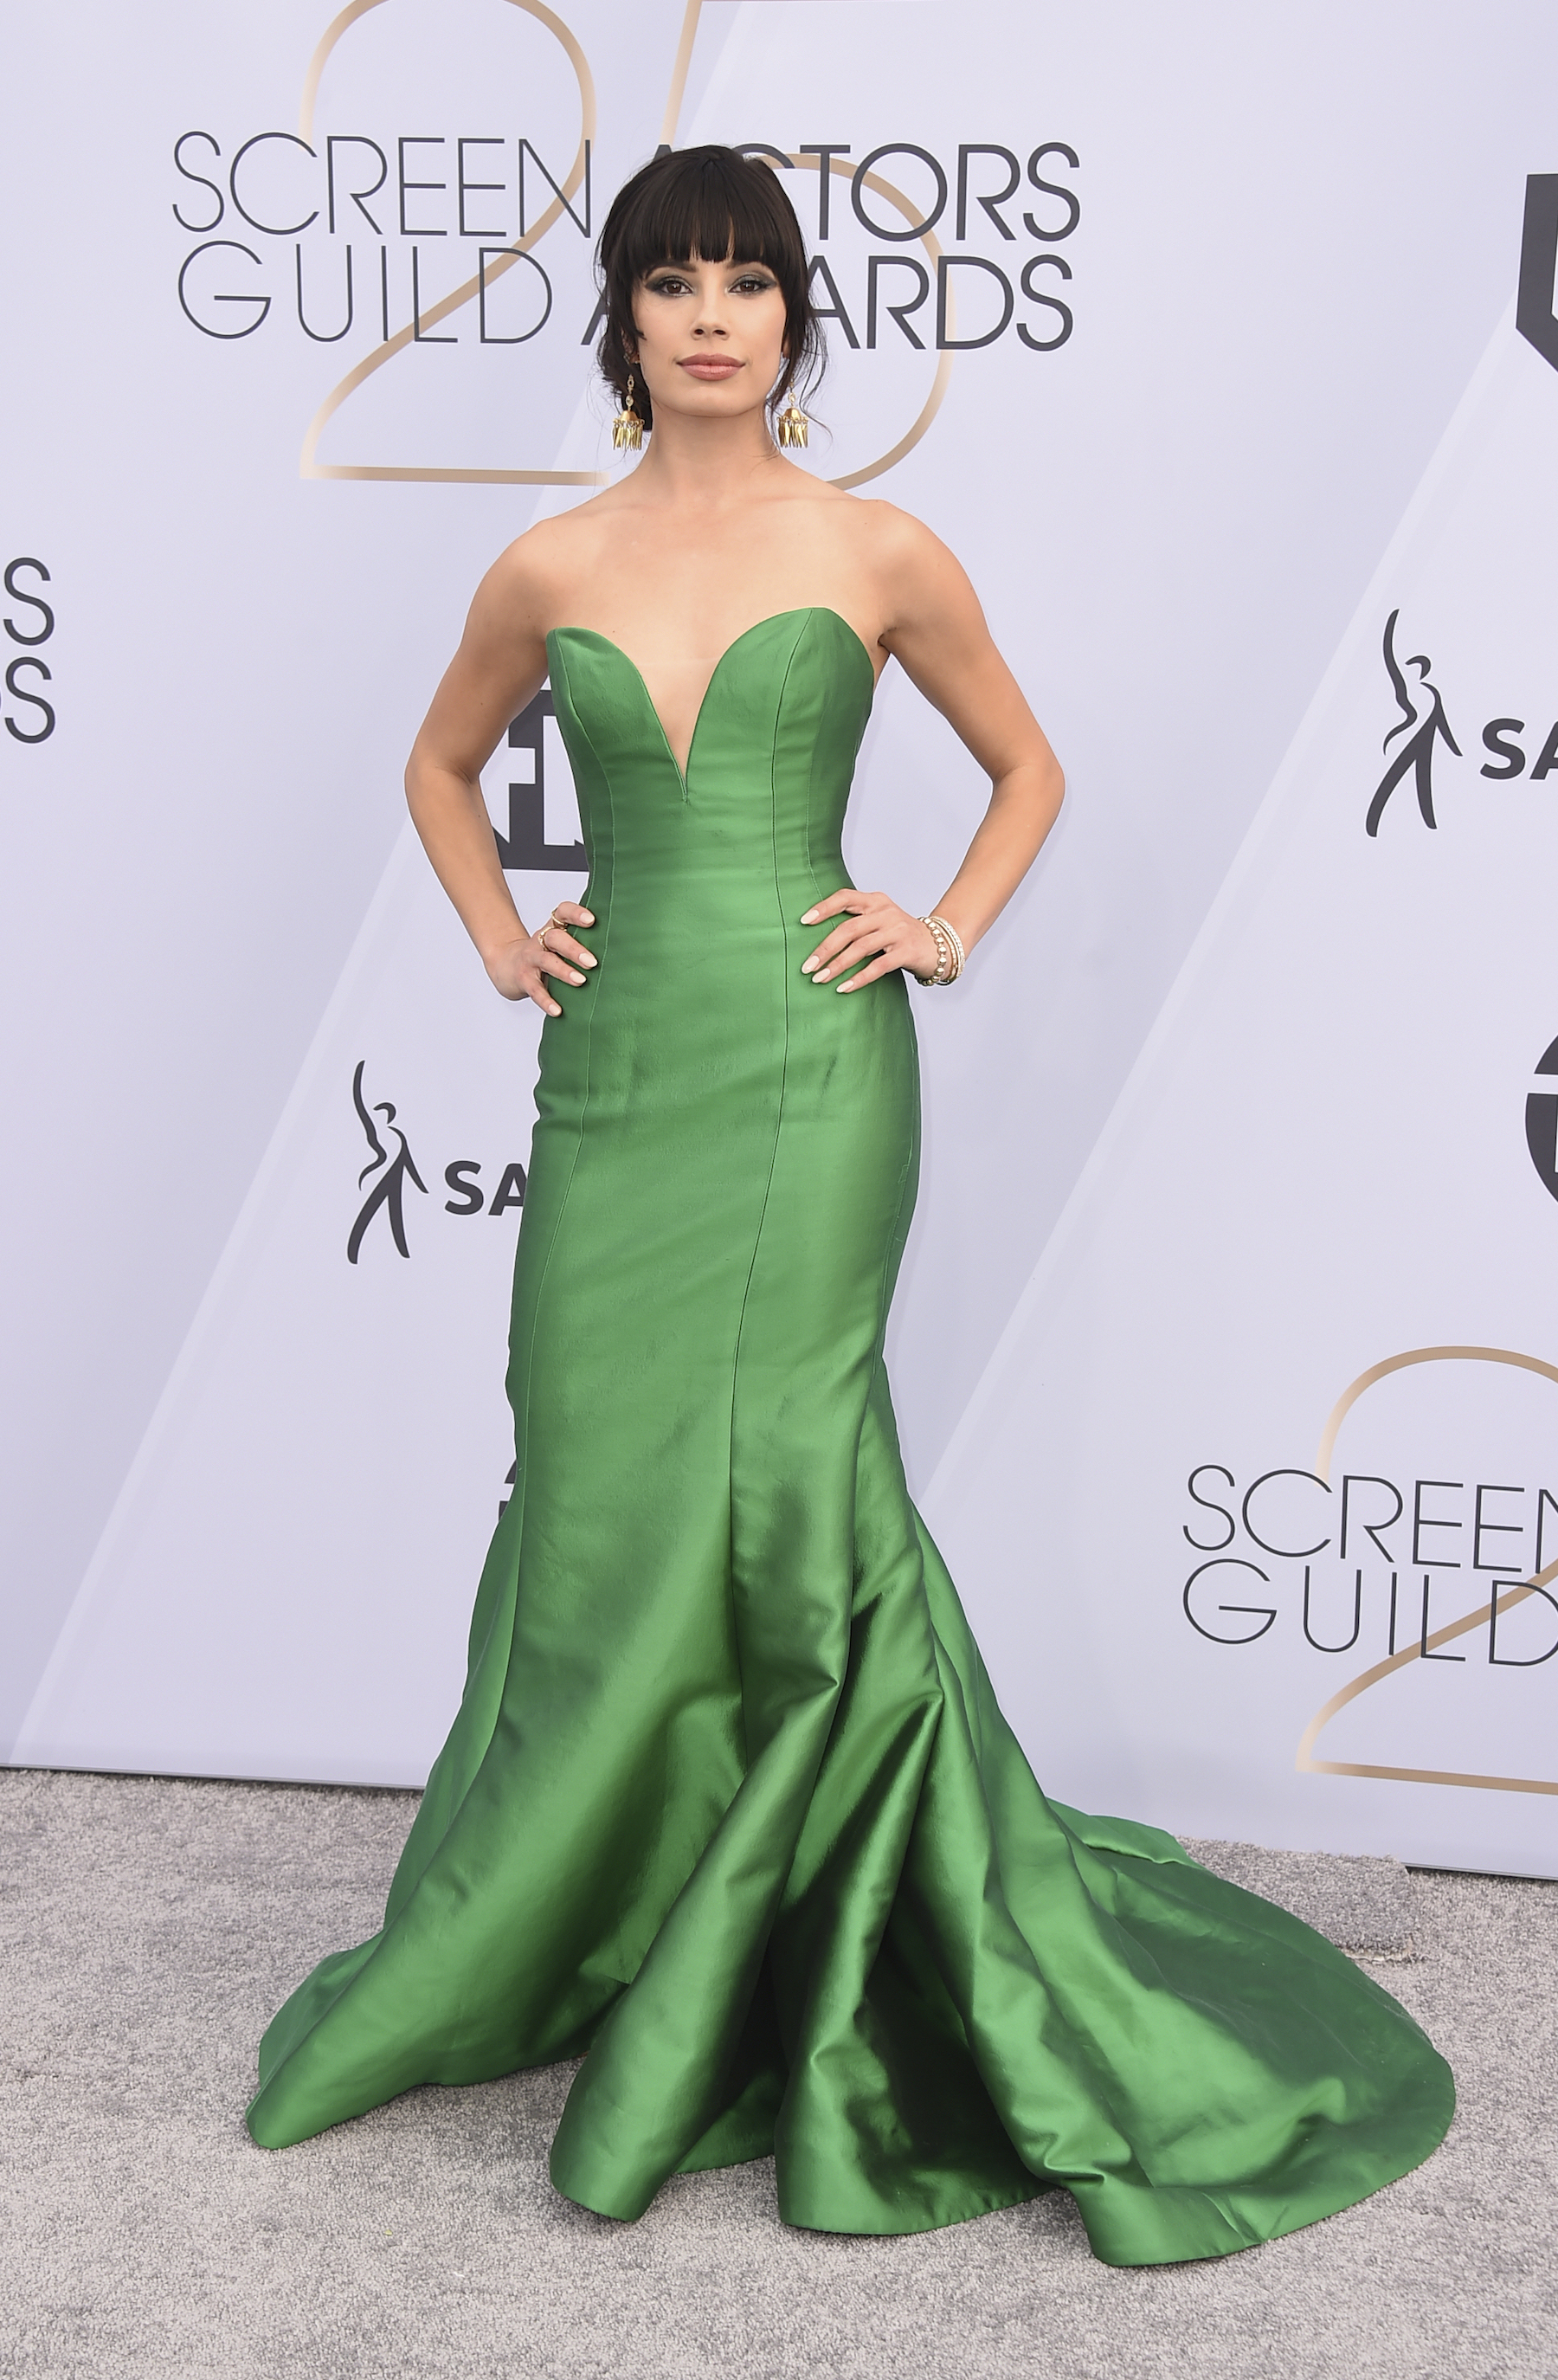 <div class='meta'><div class='origin-logo' data-origin='AP'></div><span class='caption-text' data-credit='Jordan Strauss/Invision/AP'>Jenna Lyng arrives at the 25th annual Screen Actors Guild Awards at the Shrine Auditorium & Expo Hall on Sunday, Jan. 27, 2019, in Los Angeles.</span></div>